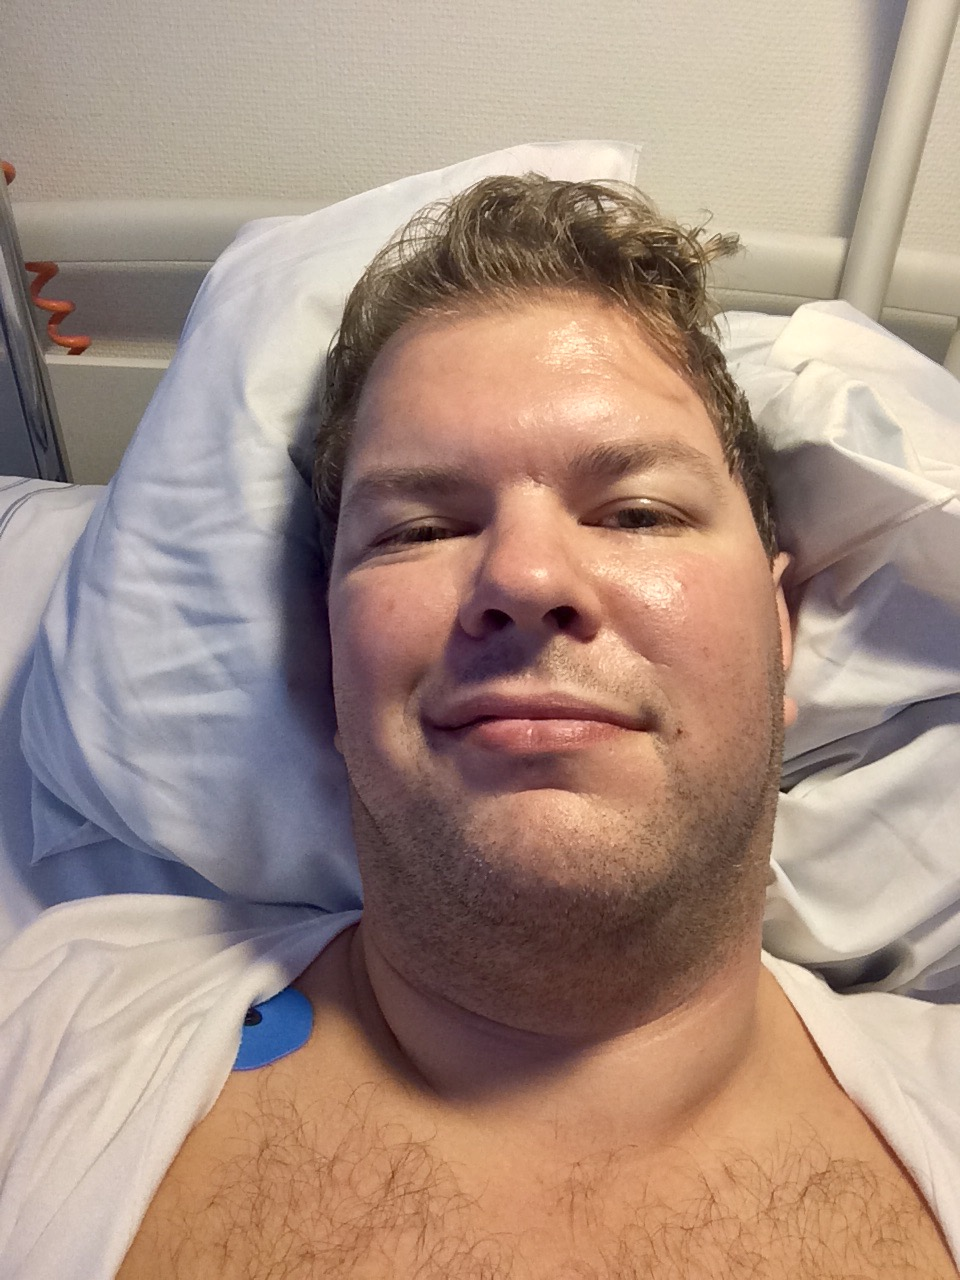 Post-op shot. In pain, but feeling a lot better. Funny how that can happen.